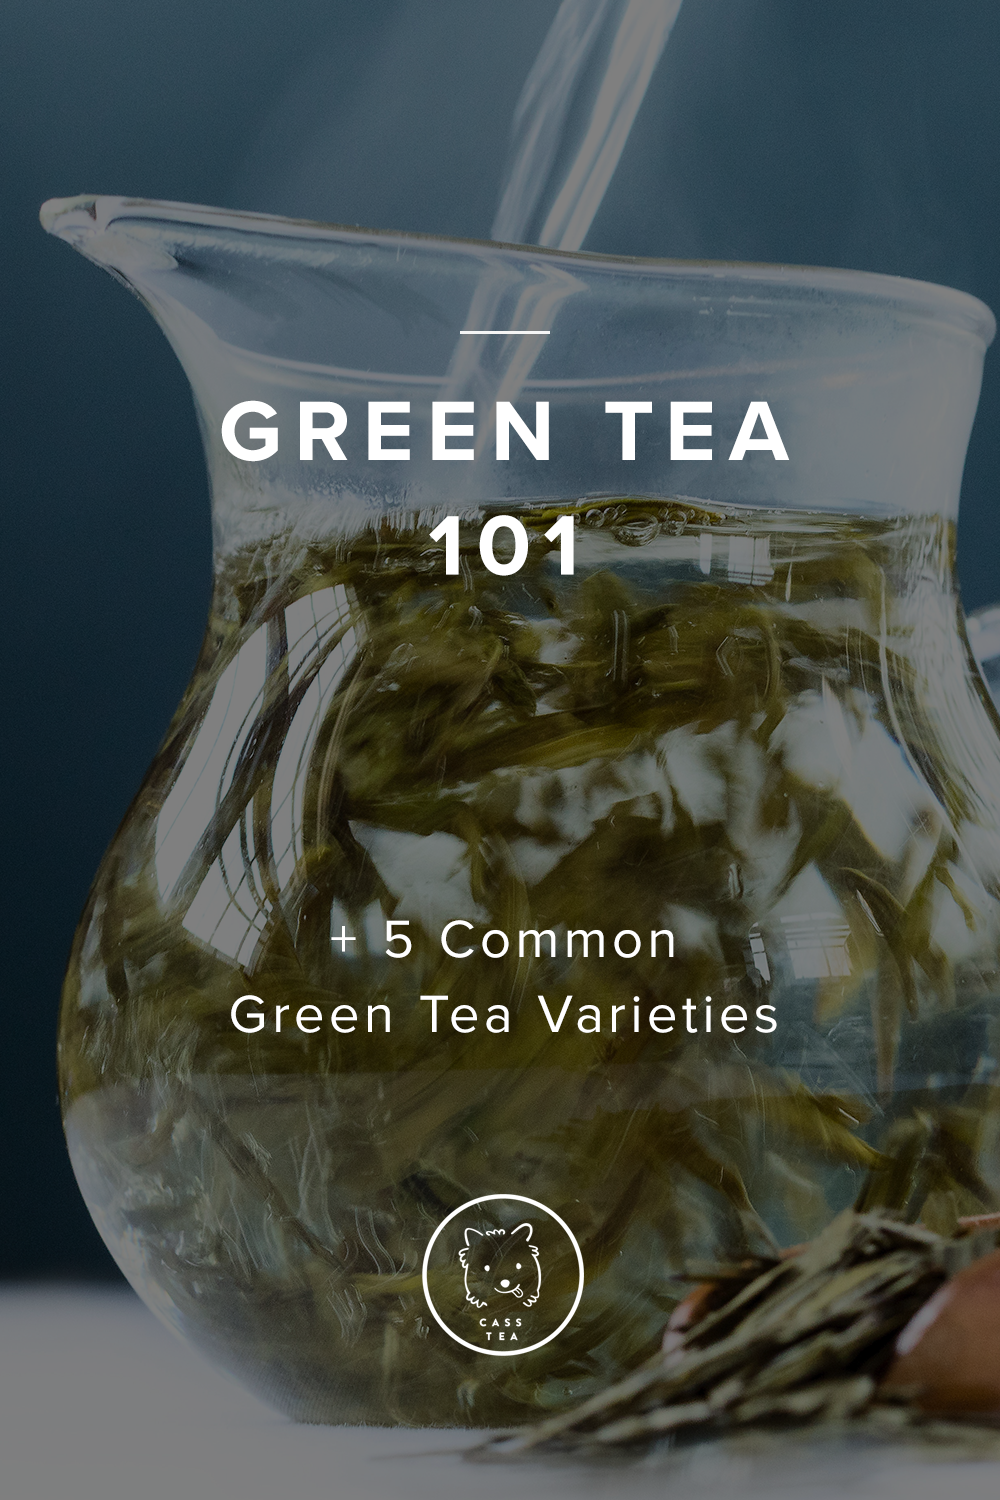 Green Tea 101 is designed to give you a brief overview of Chinese Great tea. While green tea is the most popular form of tea in the world, it's less popular in the west where Red tea (mislabeled as Black tea) reigns king. This Cheat sheet will demystify the real green tea for you.